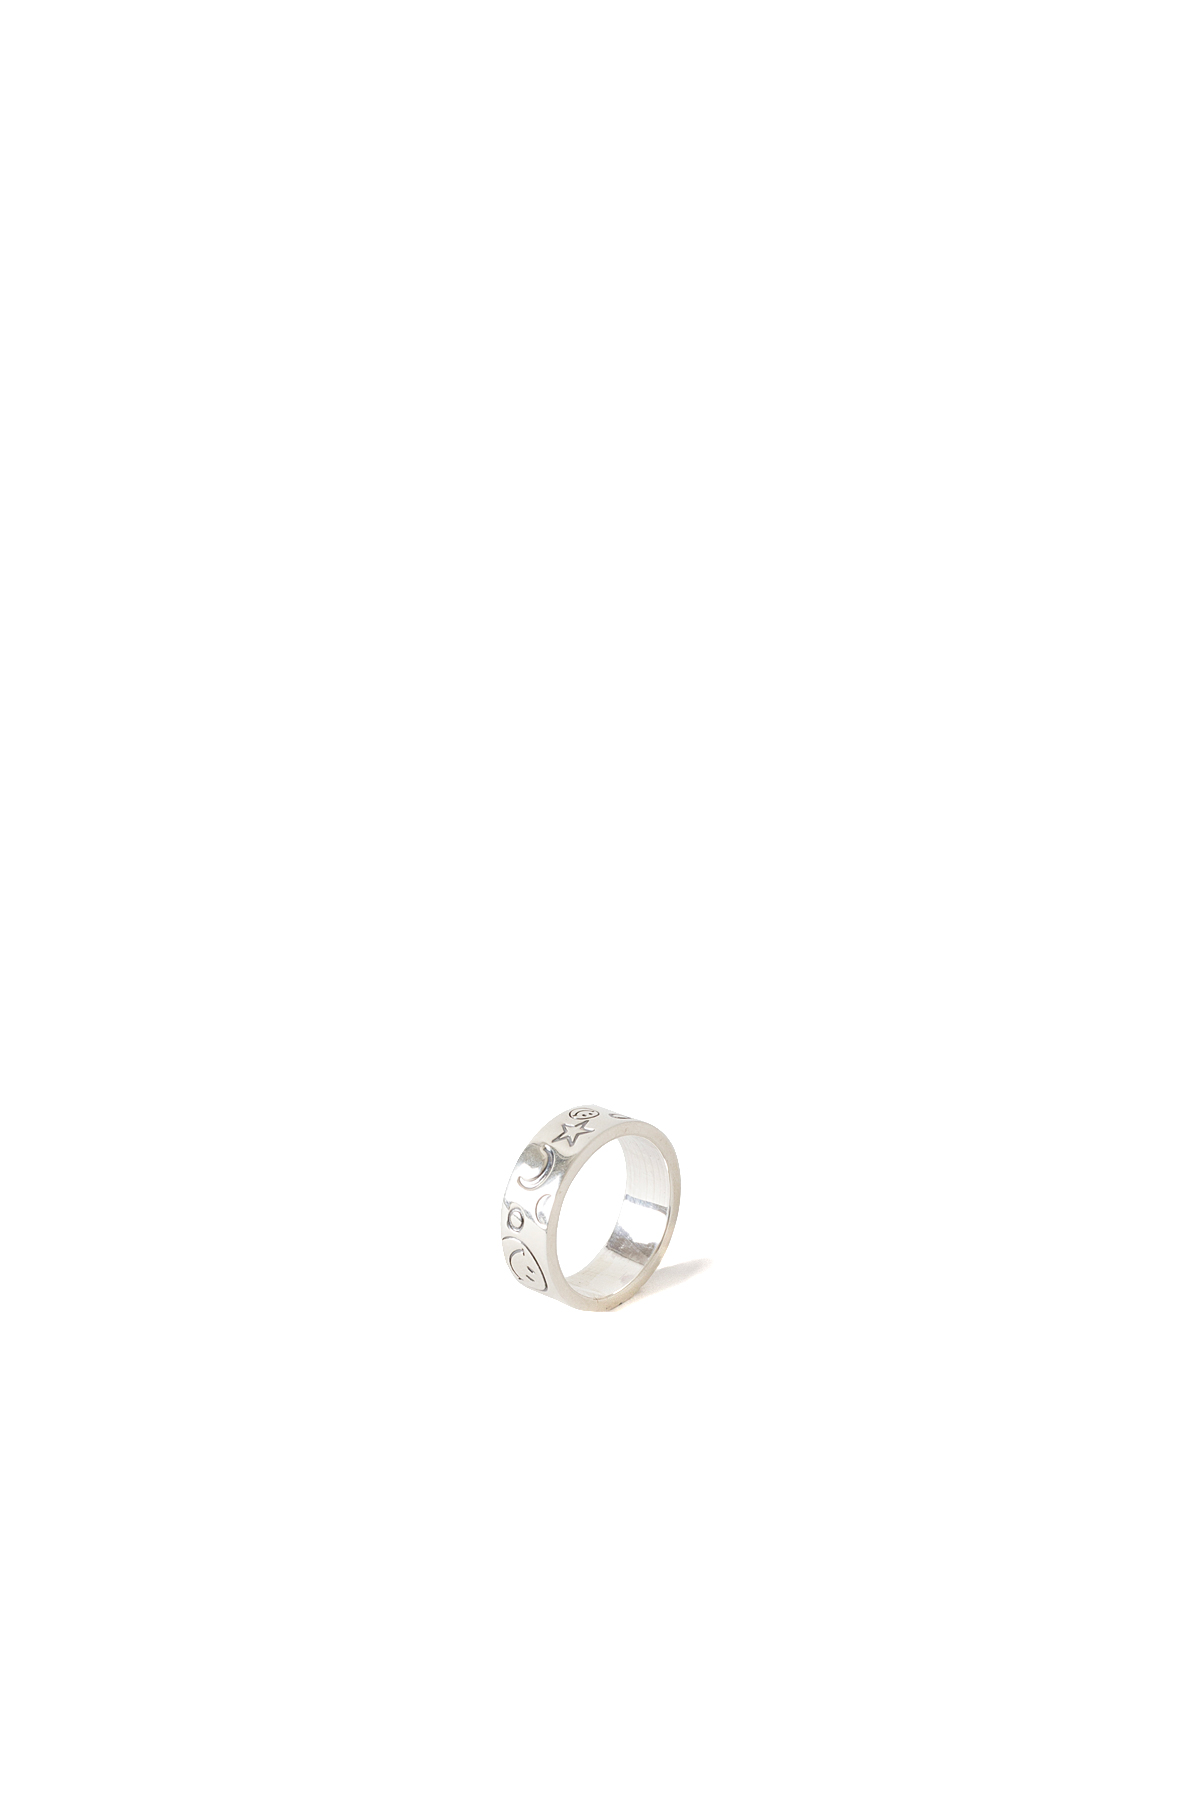 North Works : 900 Silver Stamp Ring (W-321A)